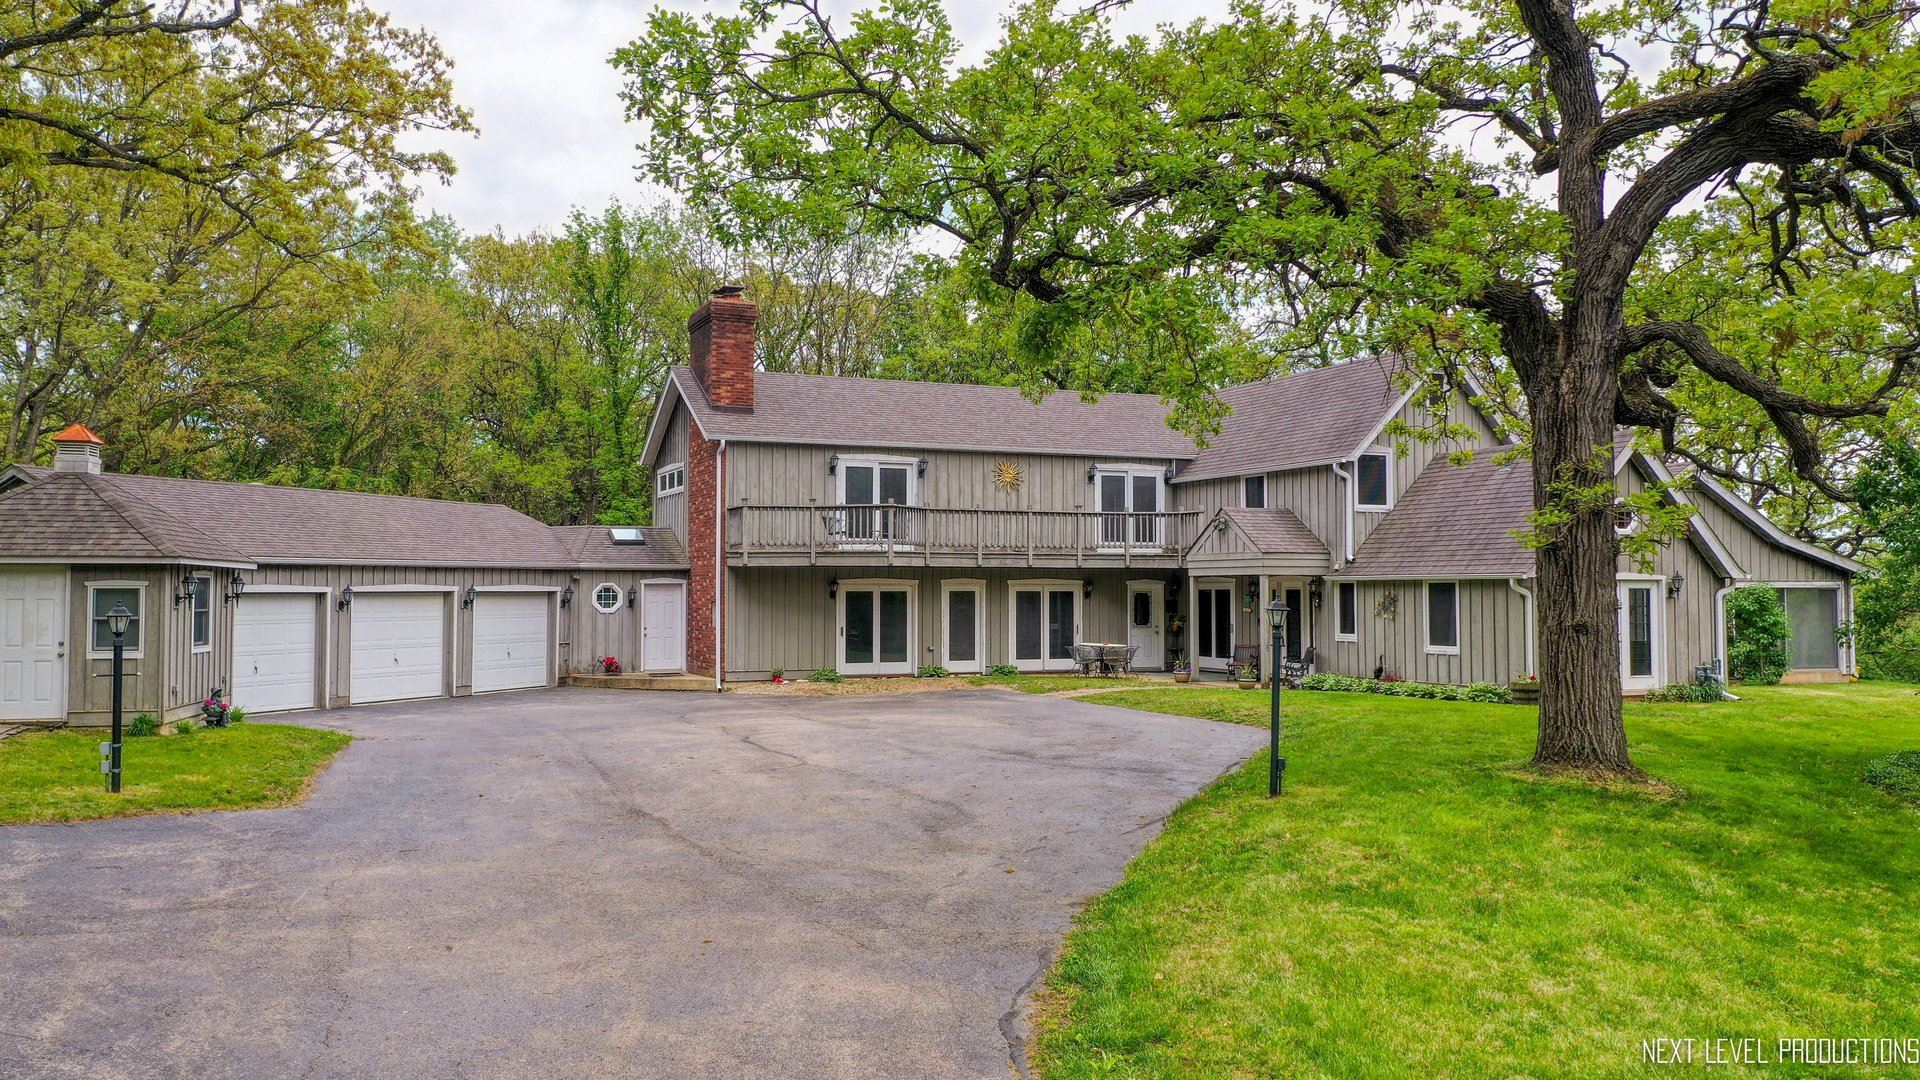 41W898 Beith Road, Campton Hills, IL 60119 - #: 11083324